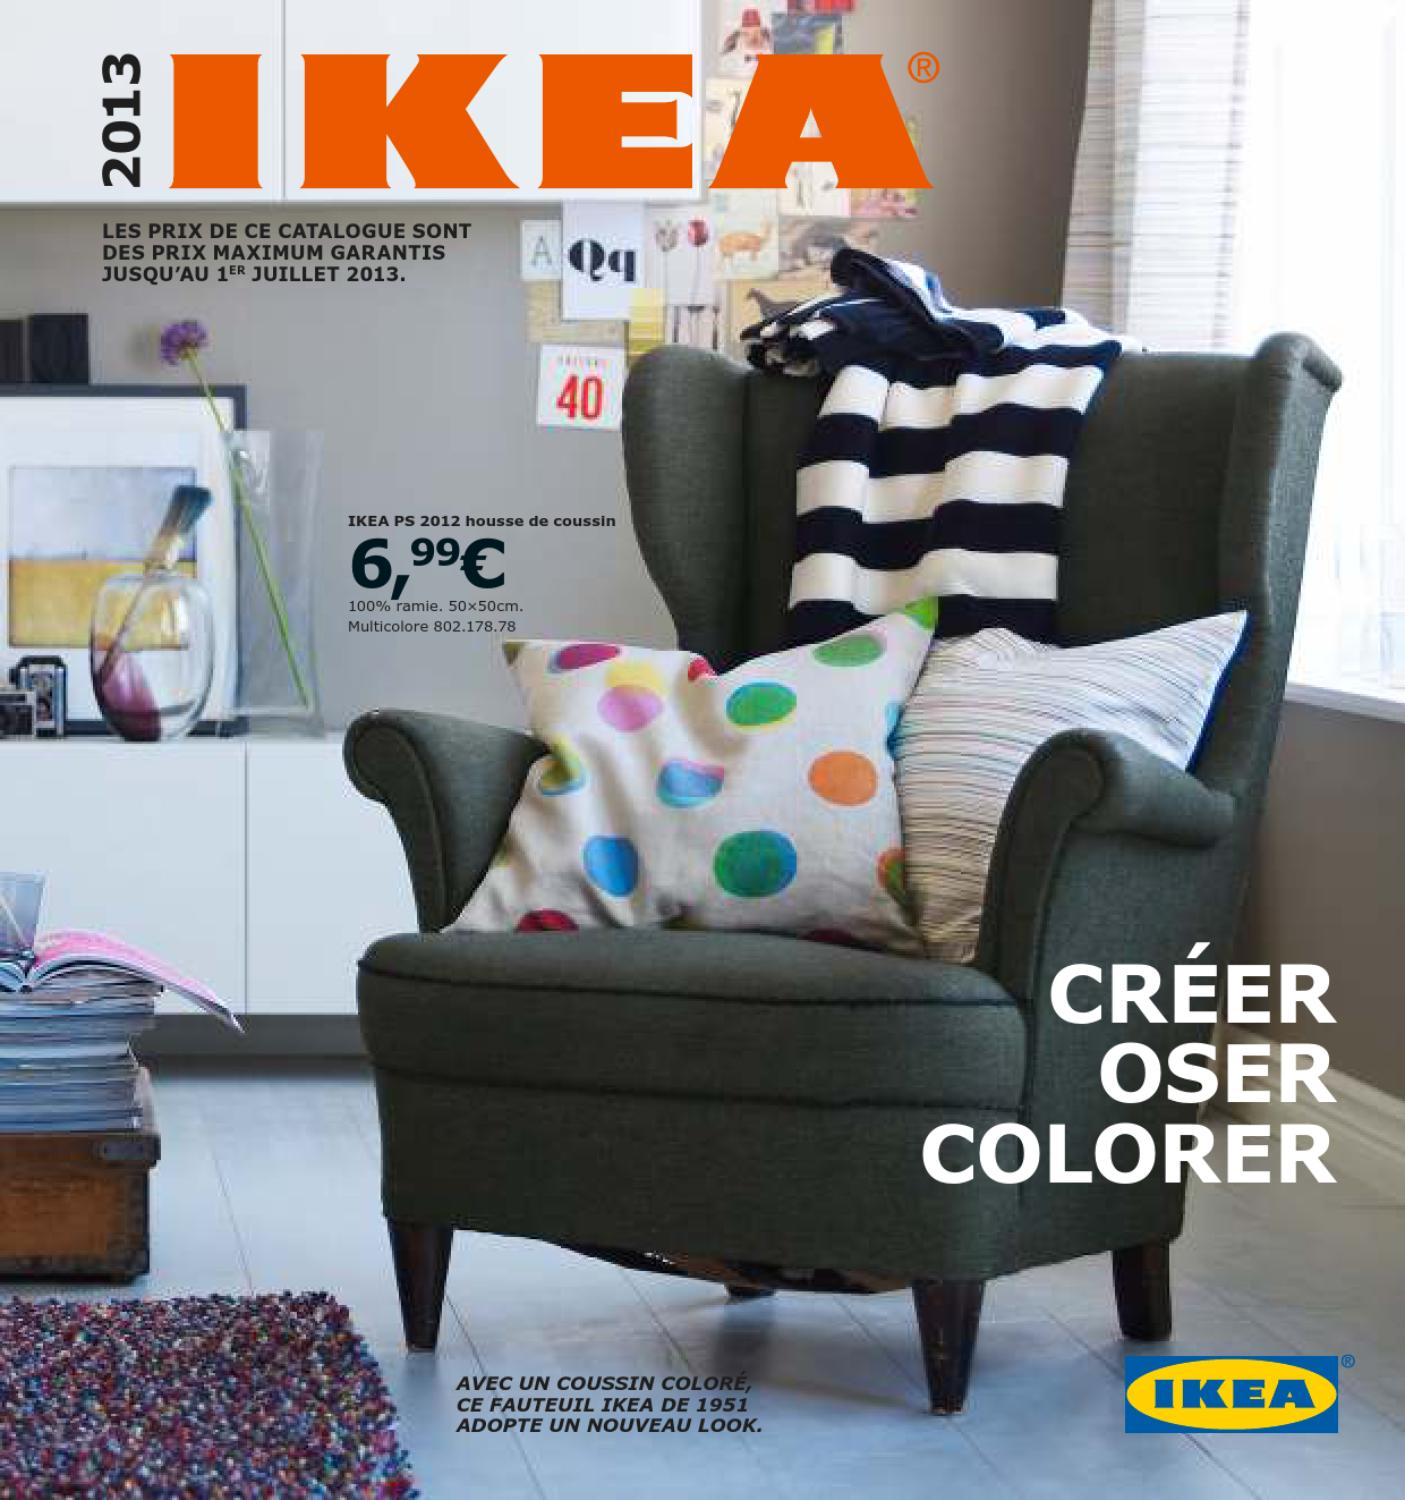 Ikea Creteil Soleil Ikea Catalogue France 2013